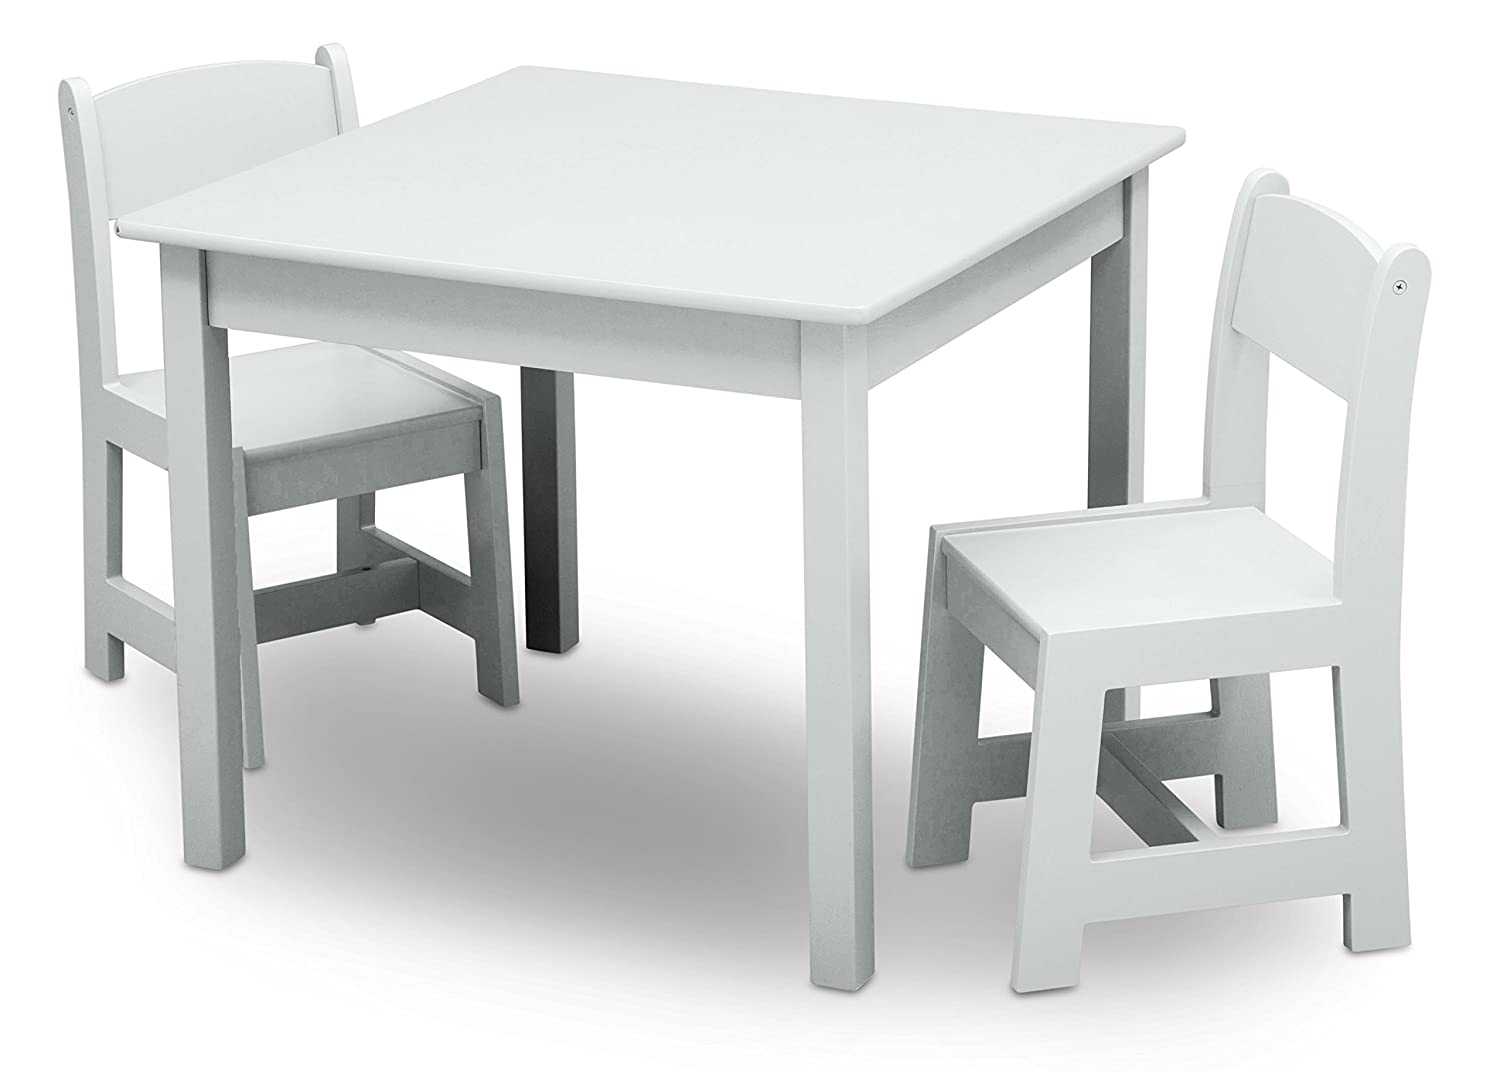 Delta Children Painted Wooden Child's Table and Chair Set (White) Delta Children Products TT89601GN-130